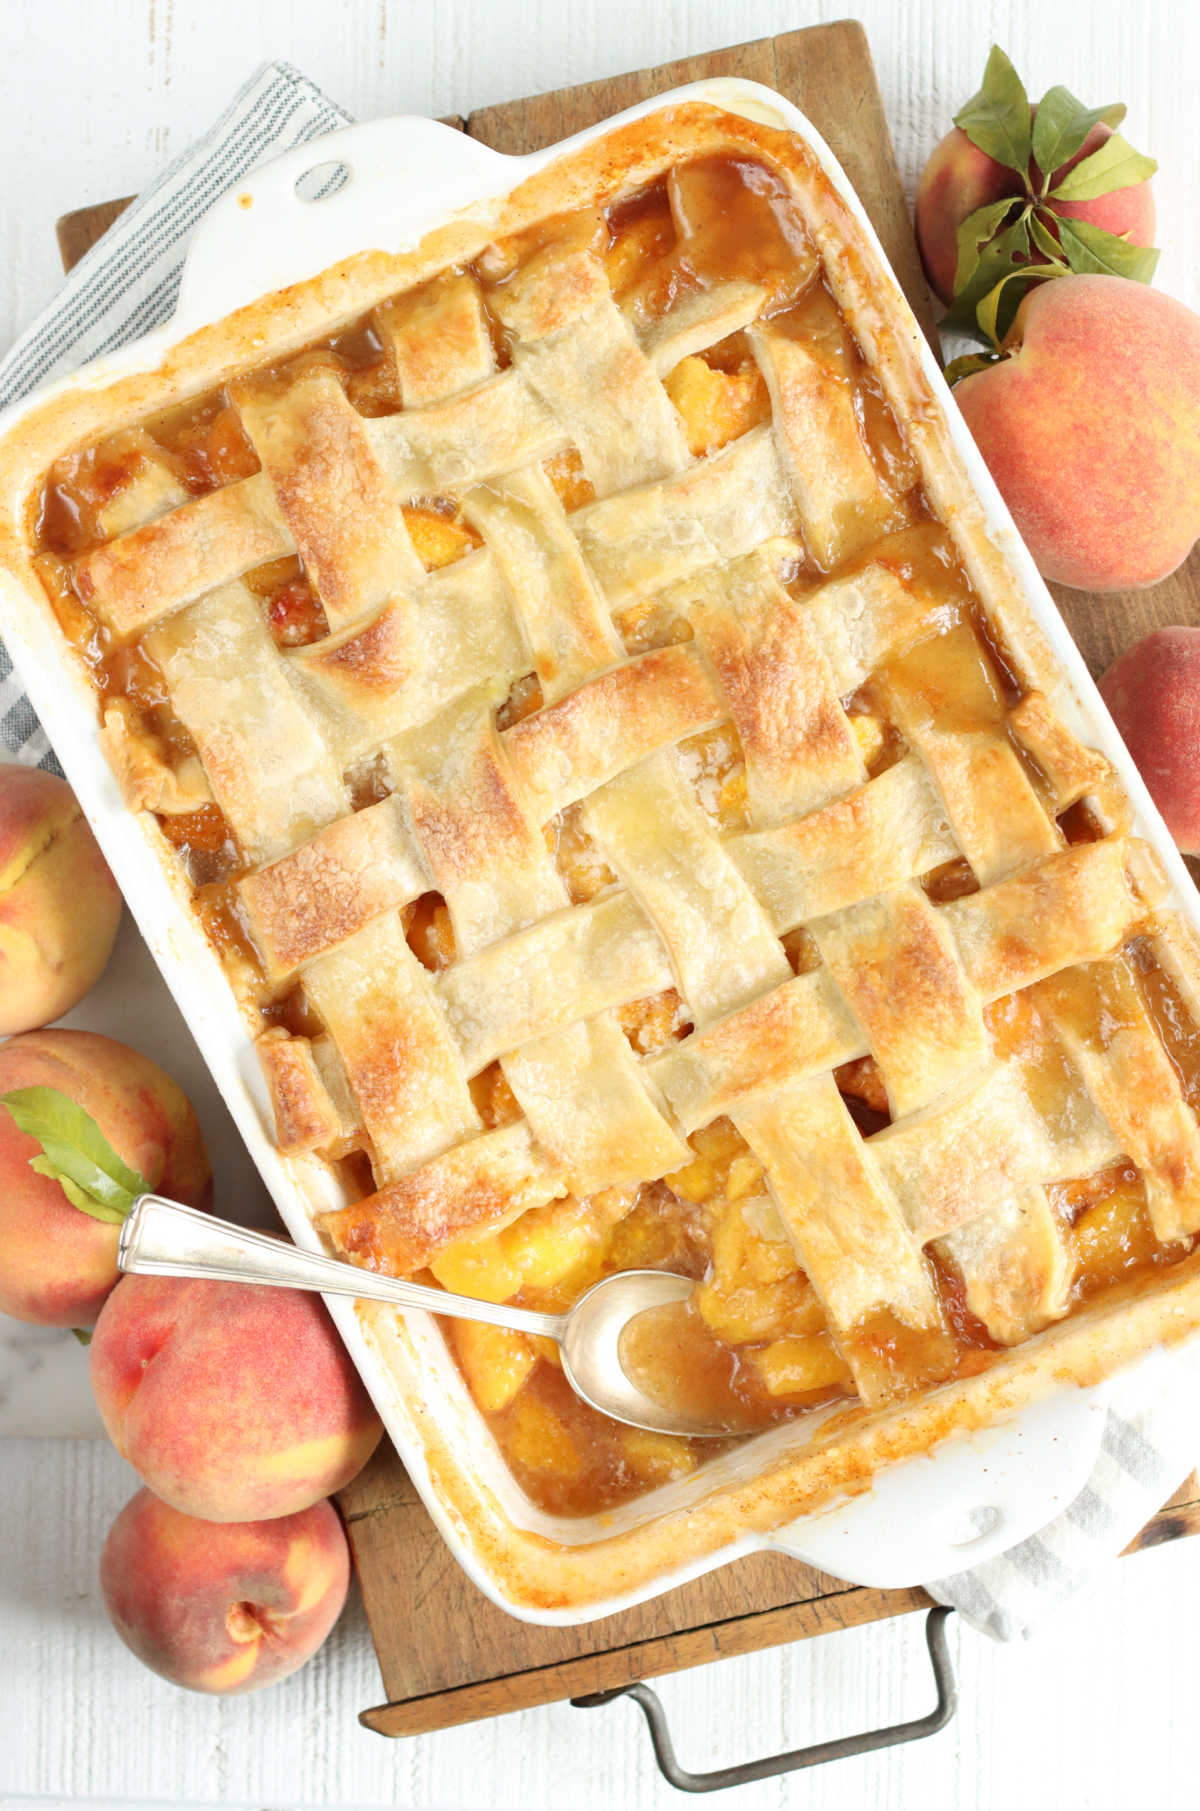 Peach cobbler with pie crust lattice weaved in white rectangle baking dish on wooden cutting board.